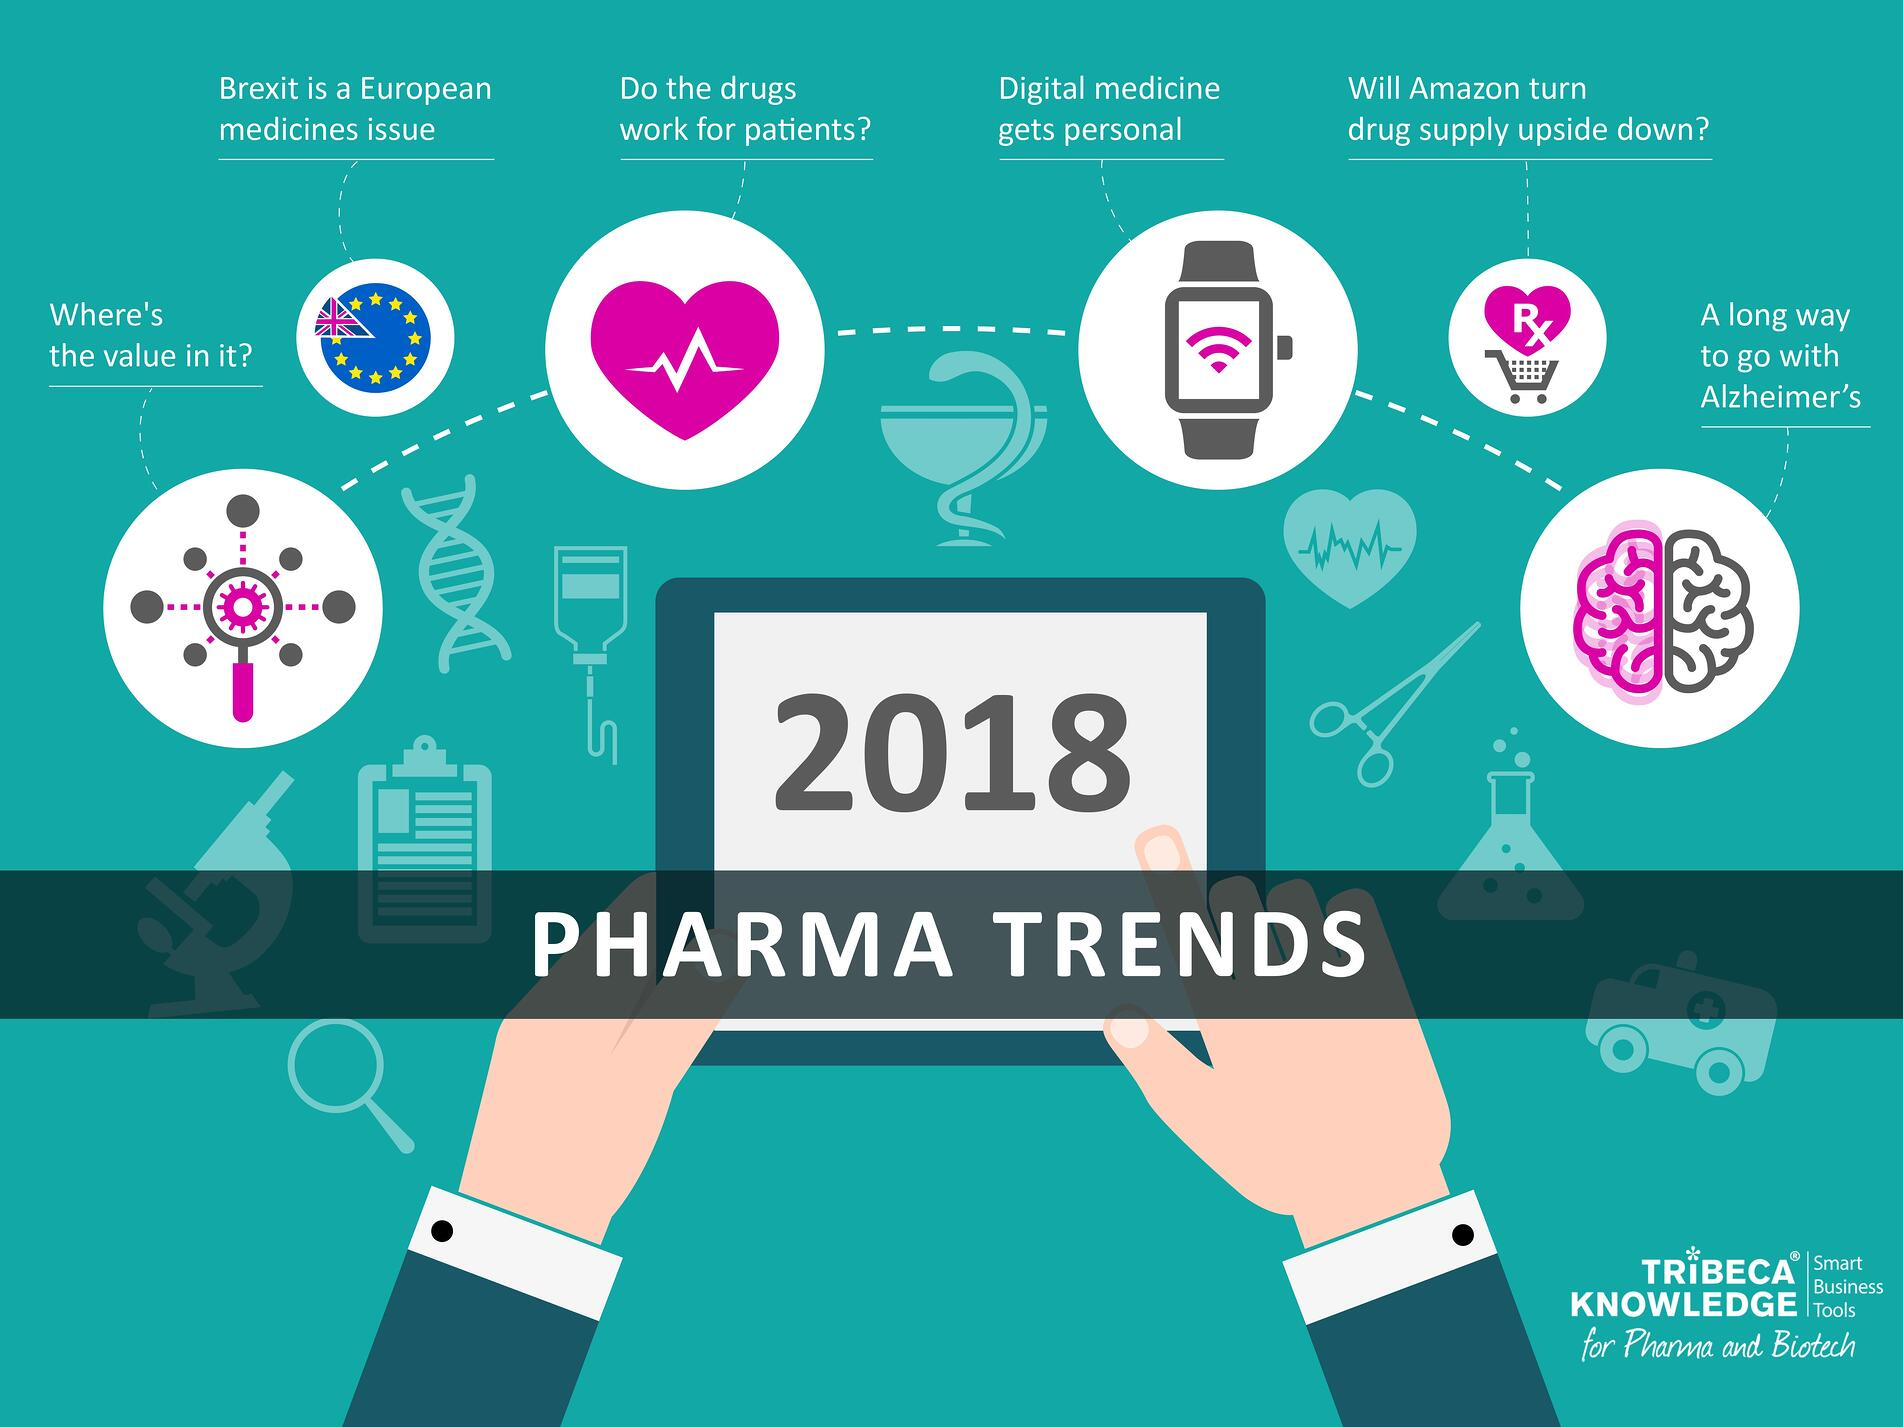 pharma_trends_illustration_version_04.jpg